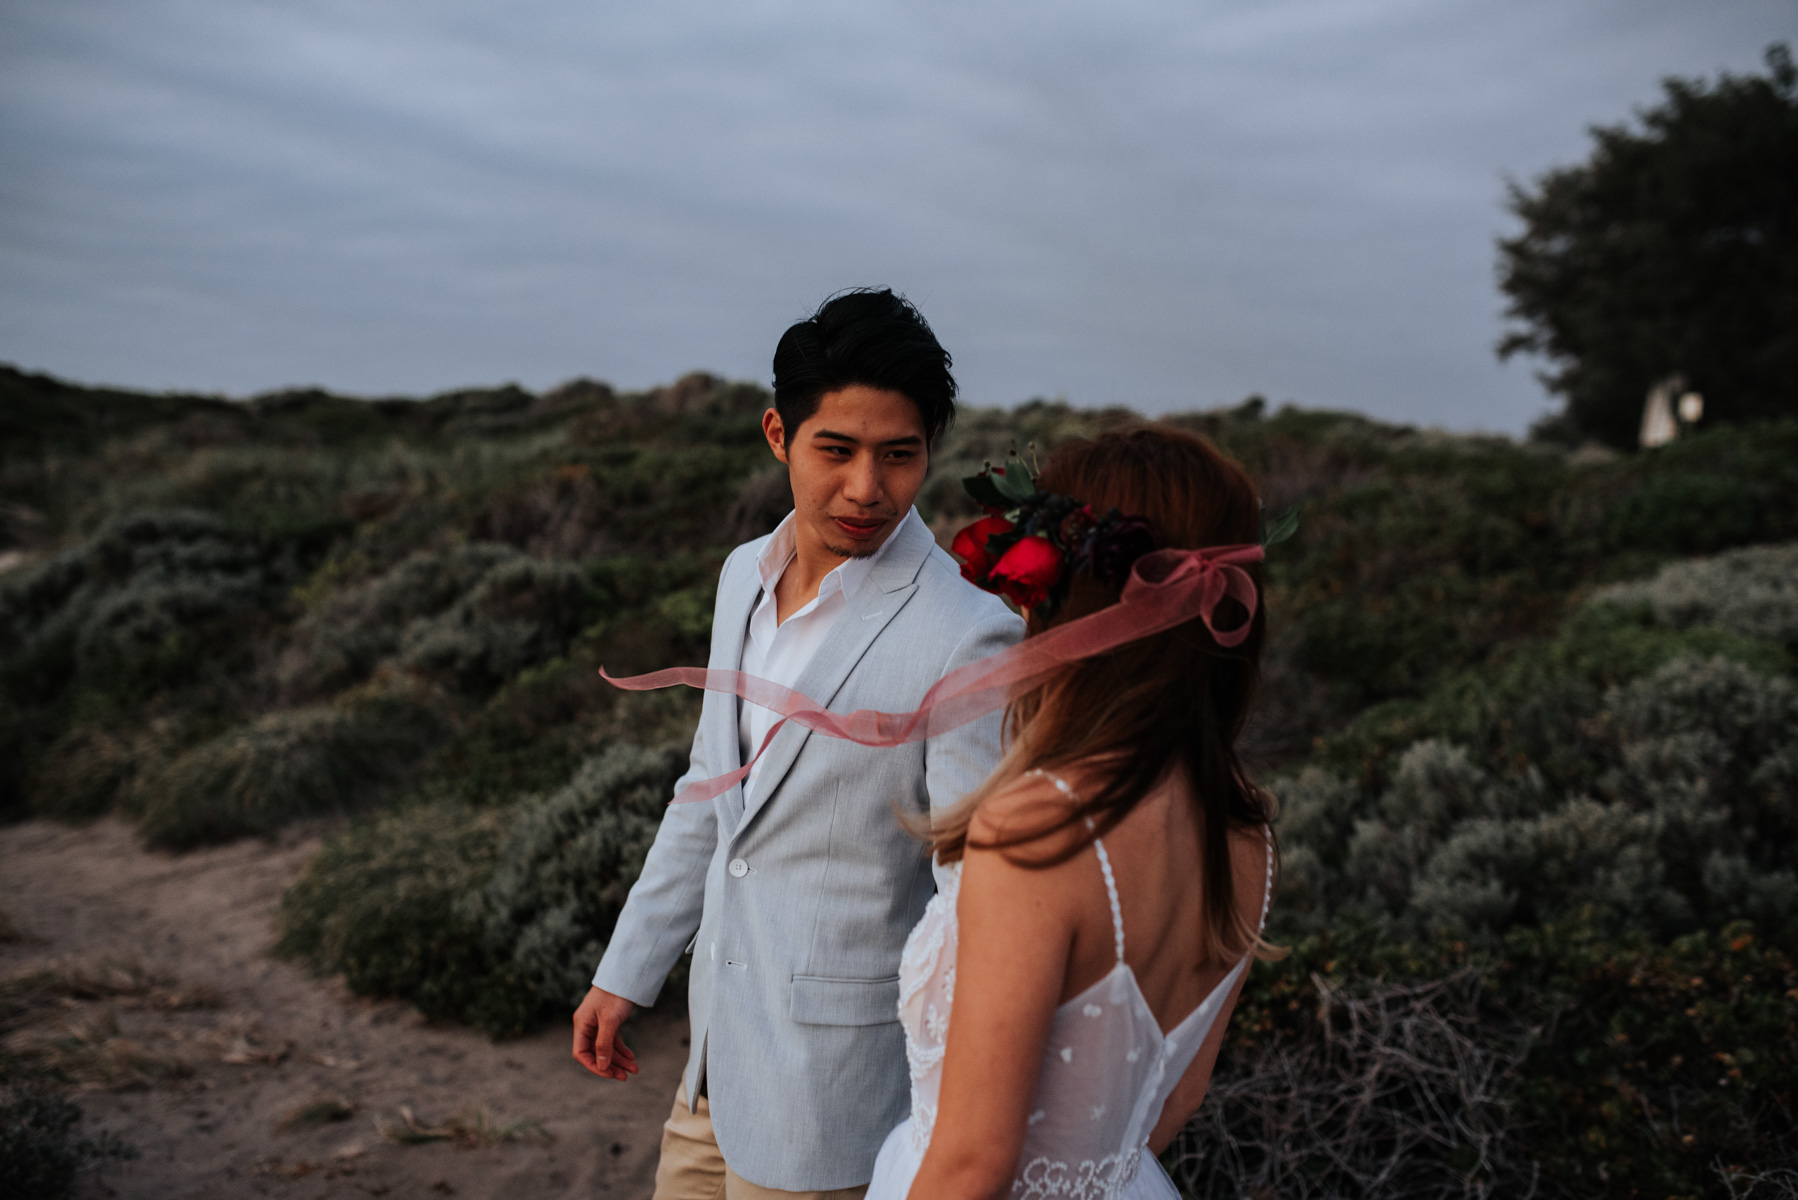 james-julene-forest-elopement-perth-41.JPG